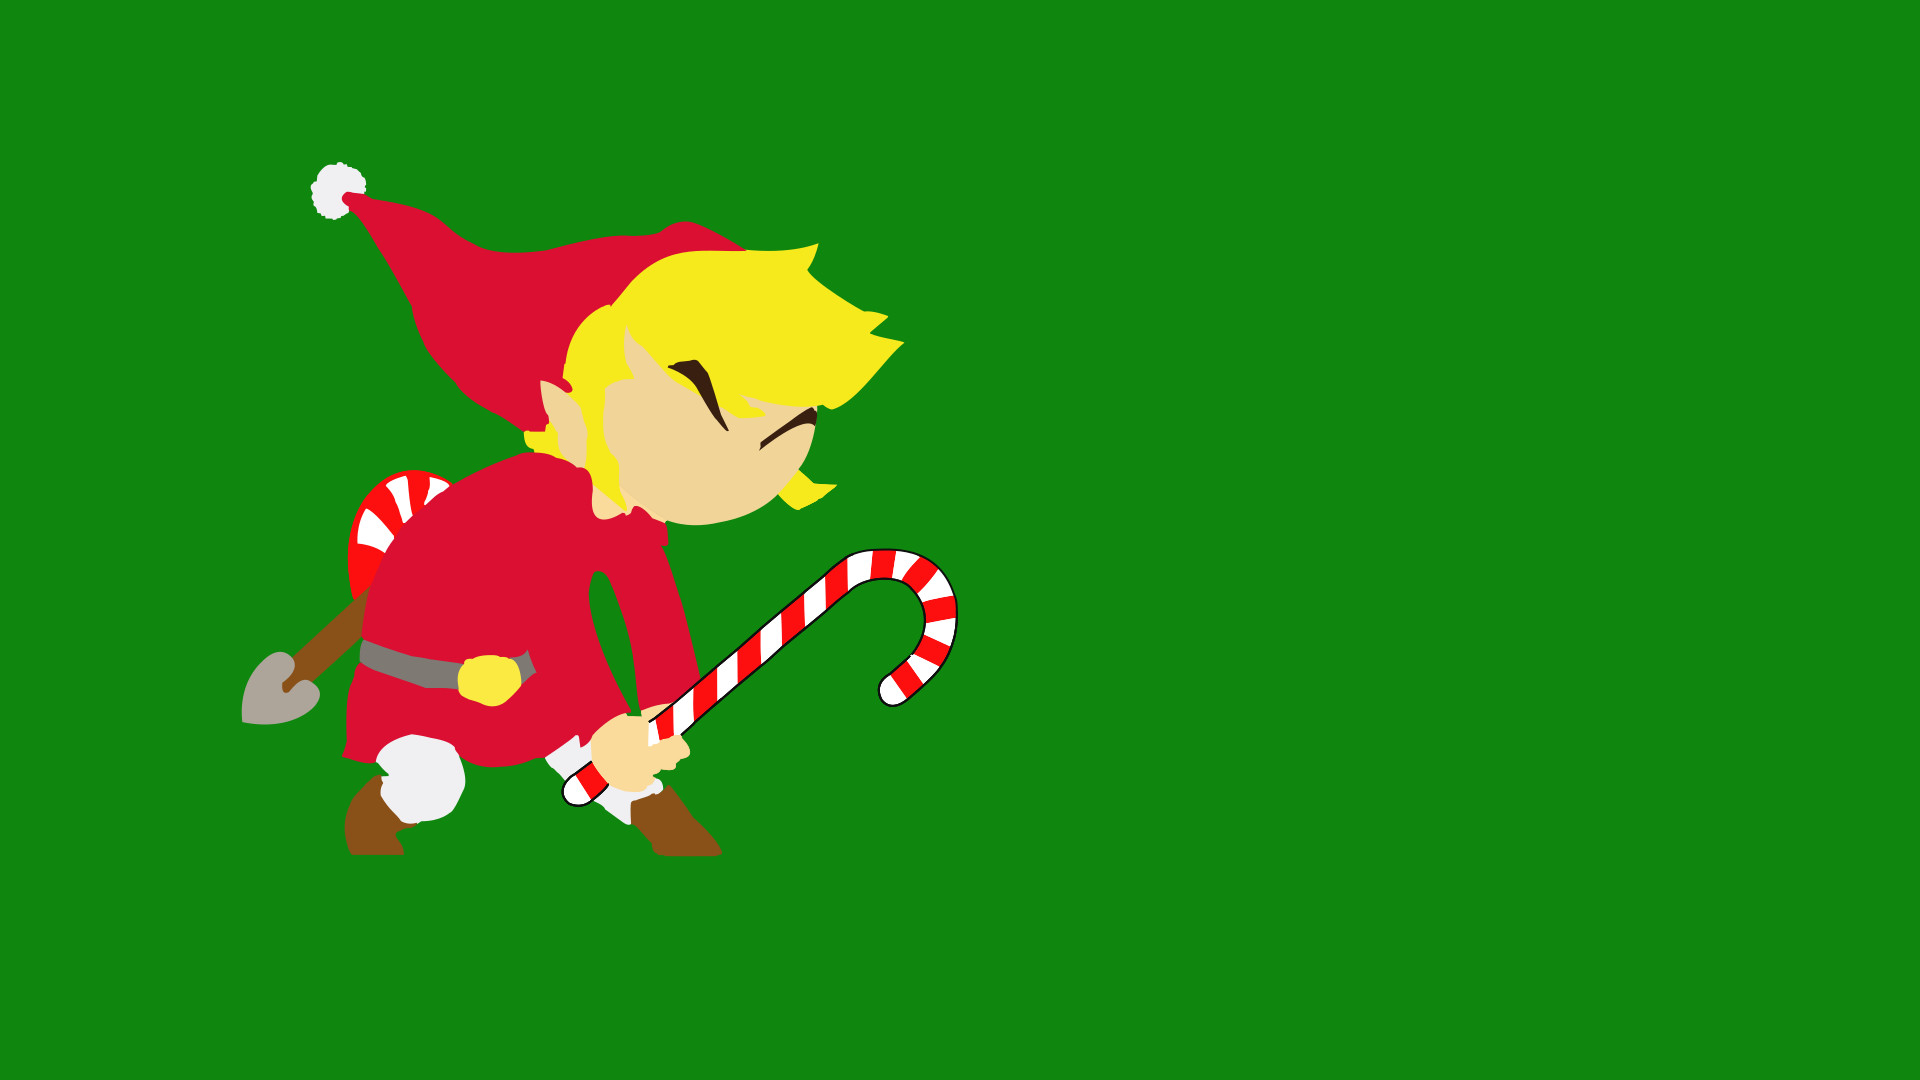 Hd toon link wallpaper 82 images for Minimalist christmas